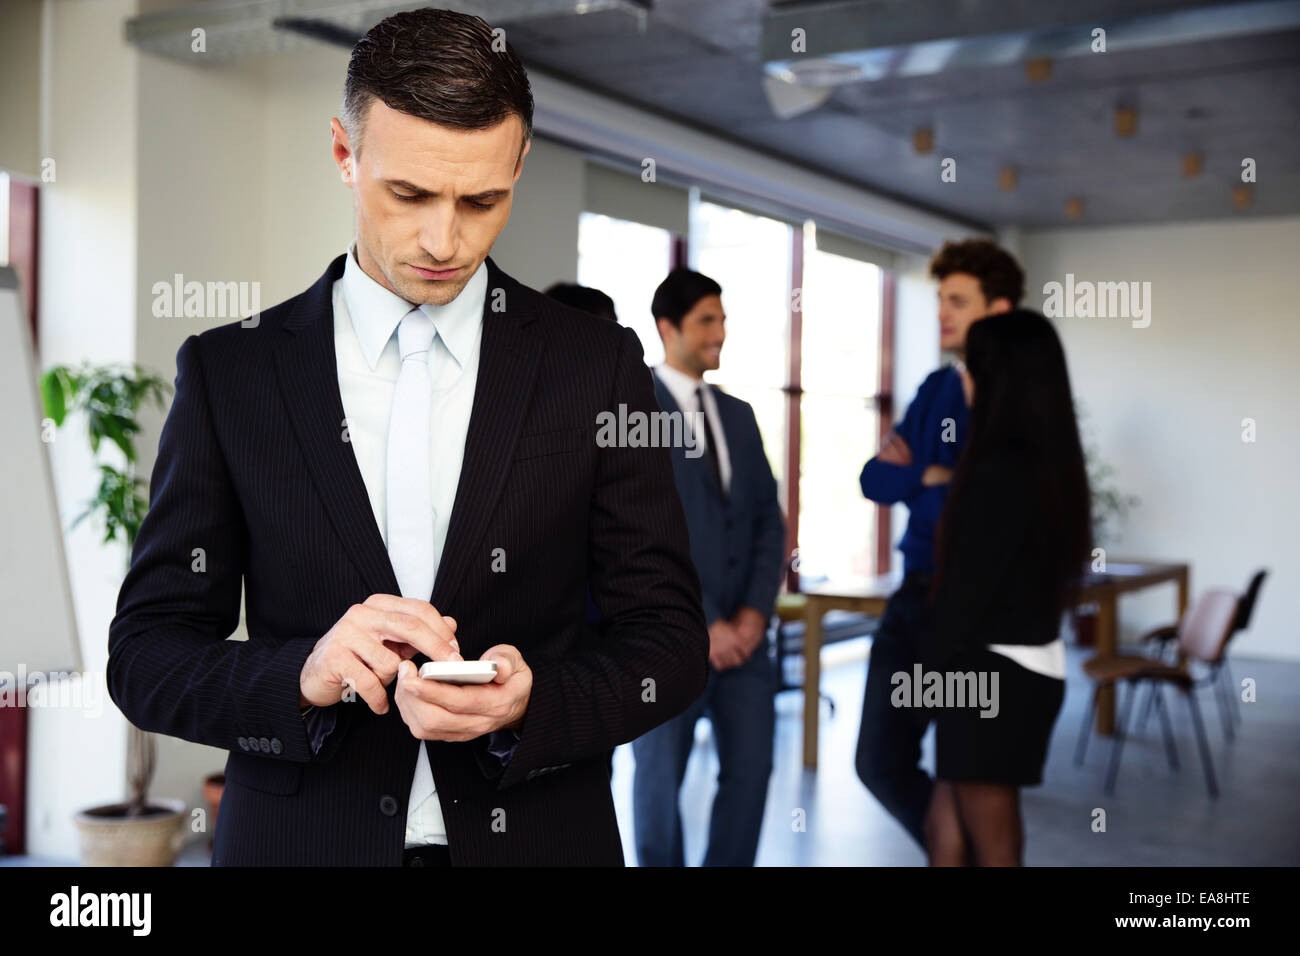 Confident businessman using smartphone in front of a colleagues - Stock Image